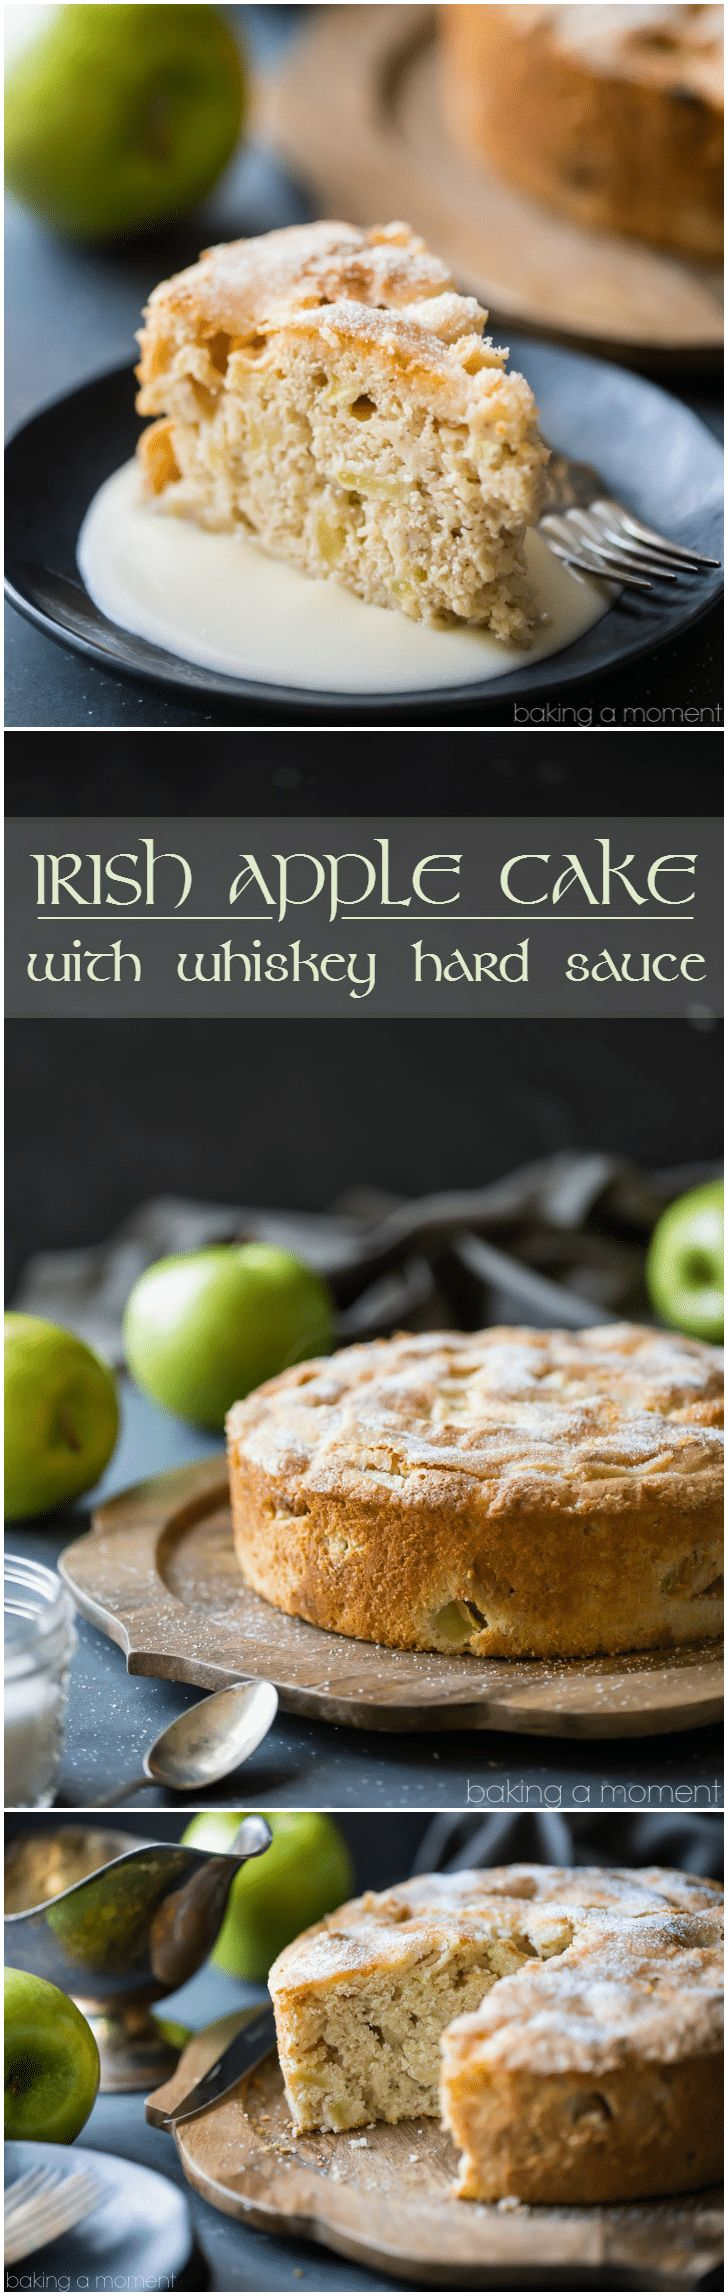 I made this Irish Apple Cake for St. Patrick's Day, but honestly it was so good I'd eat it any time of year! There was just a hint of cinnamon, allowing the tart apple flavor to really shine. The whiskey hard sauce was the perfect creamy compliment!  food desserts cake via @Allie Baking a Moment